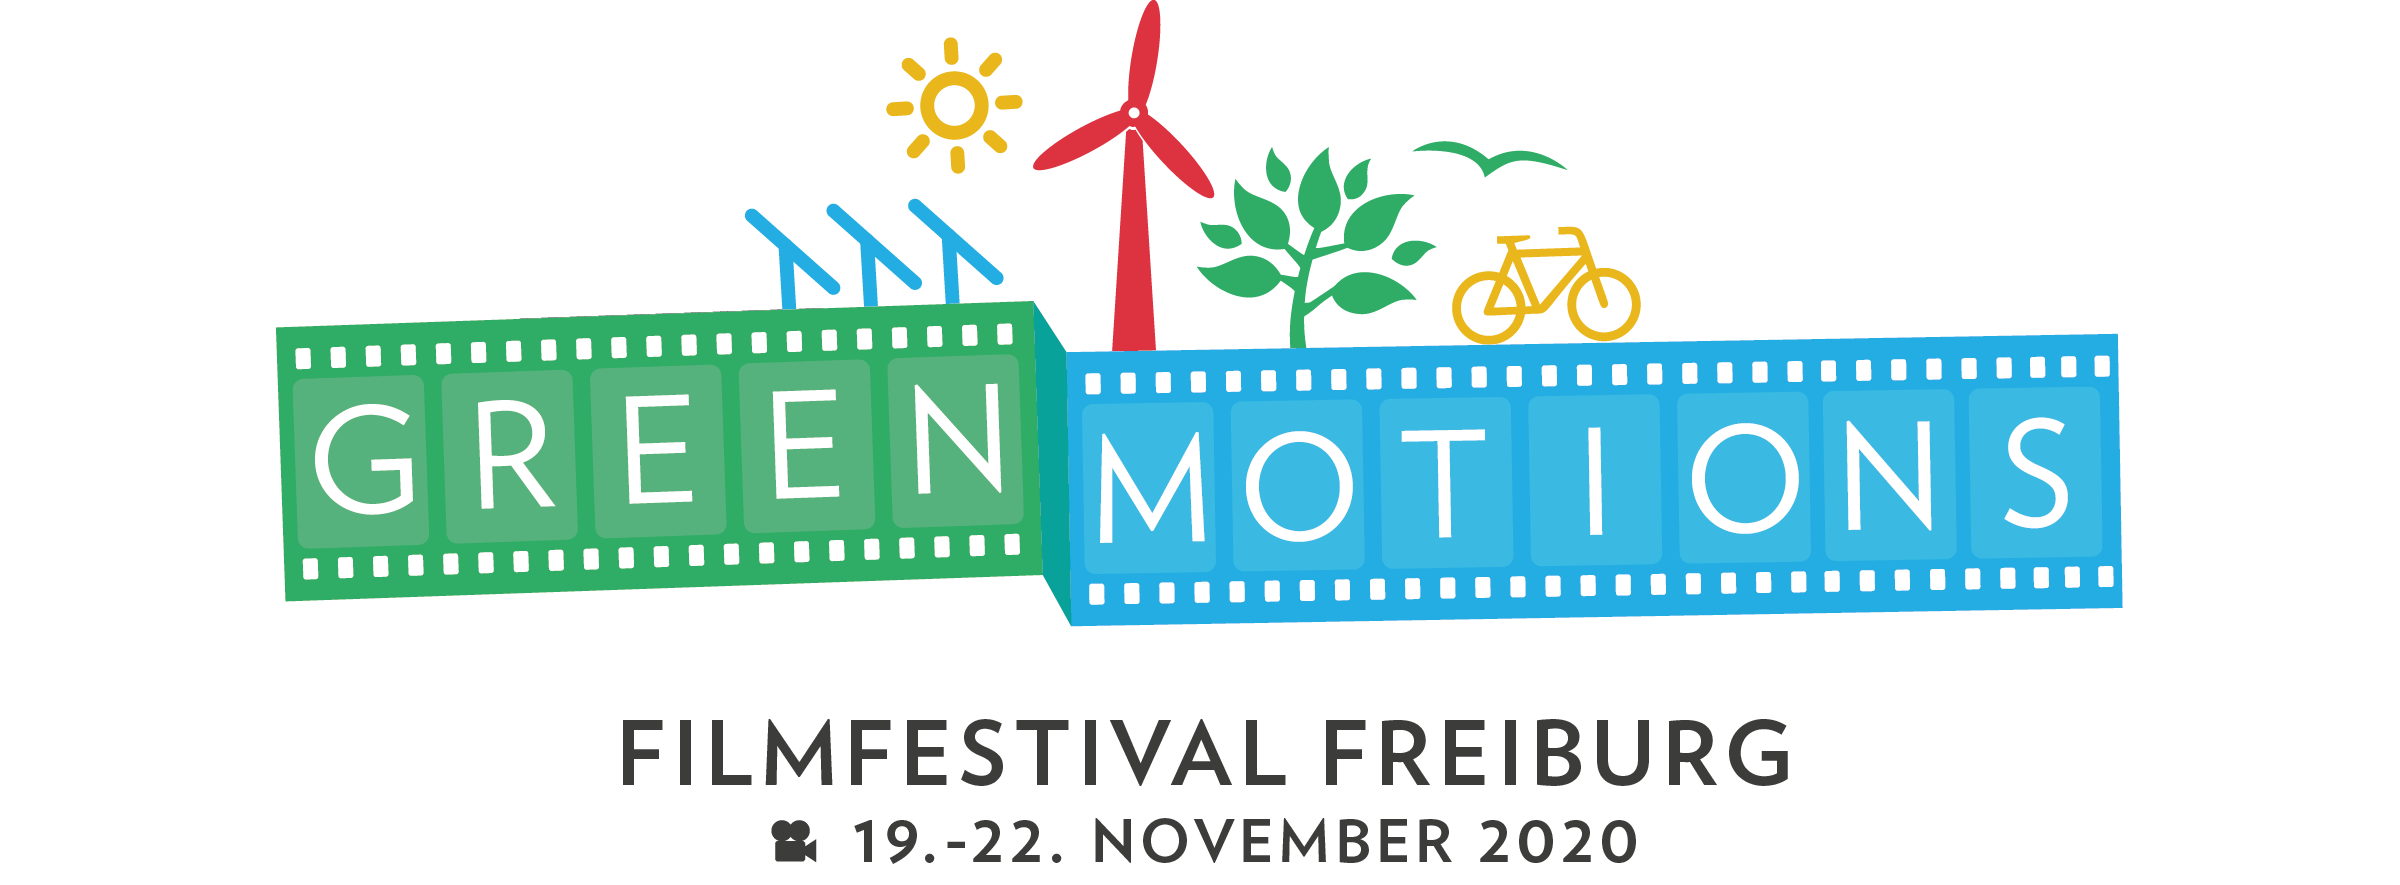 Greenmotions Filmfestival Logo